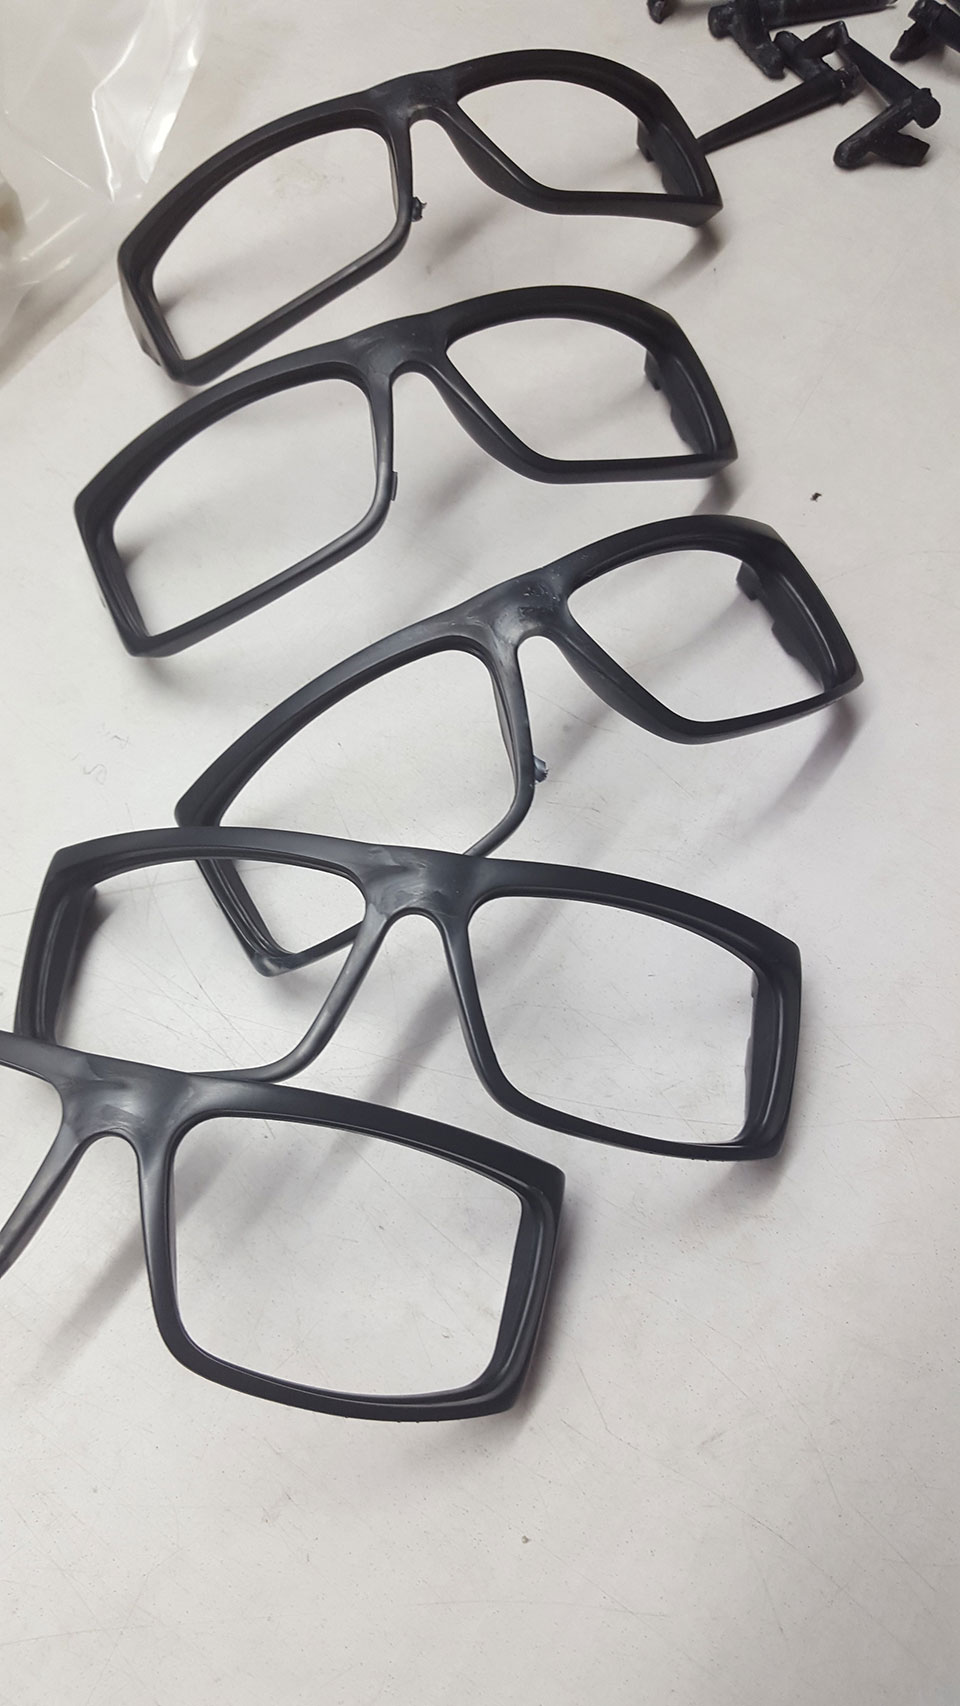 Greenius™ bioplastic formed into injection moulded sunglasses frames